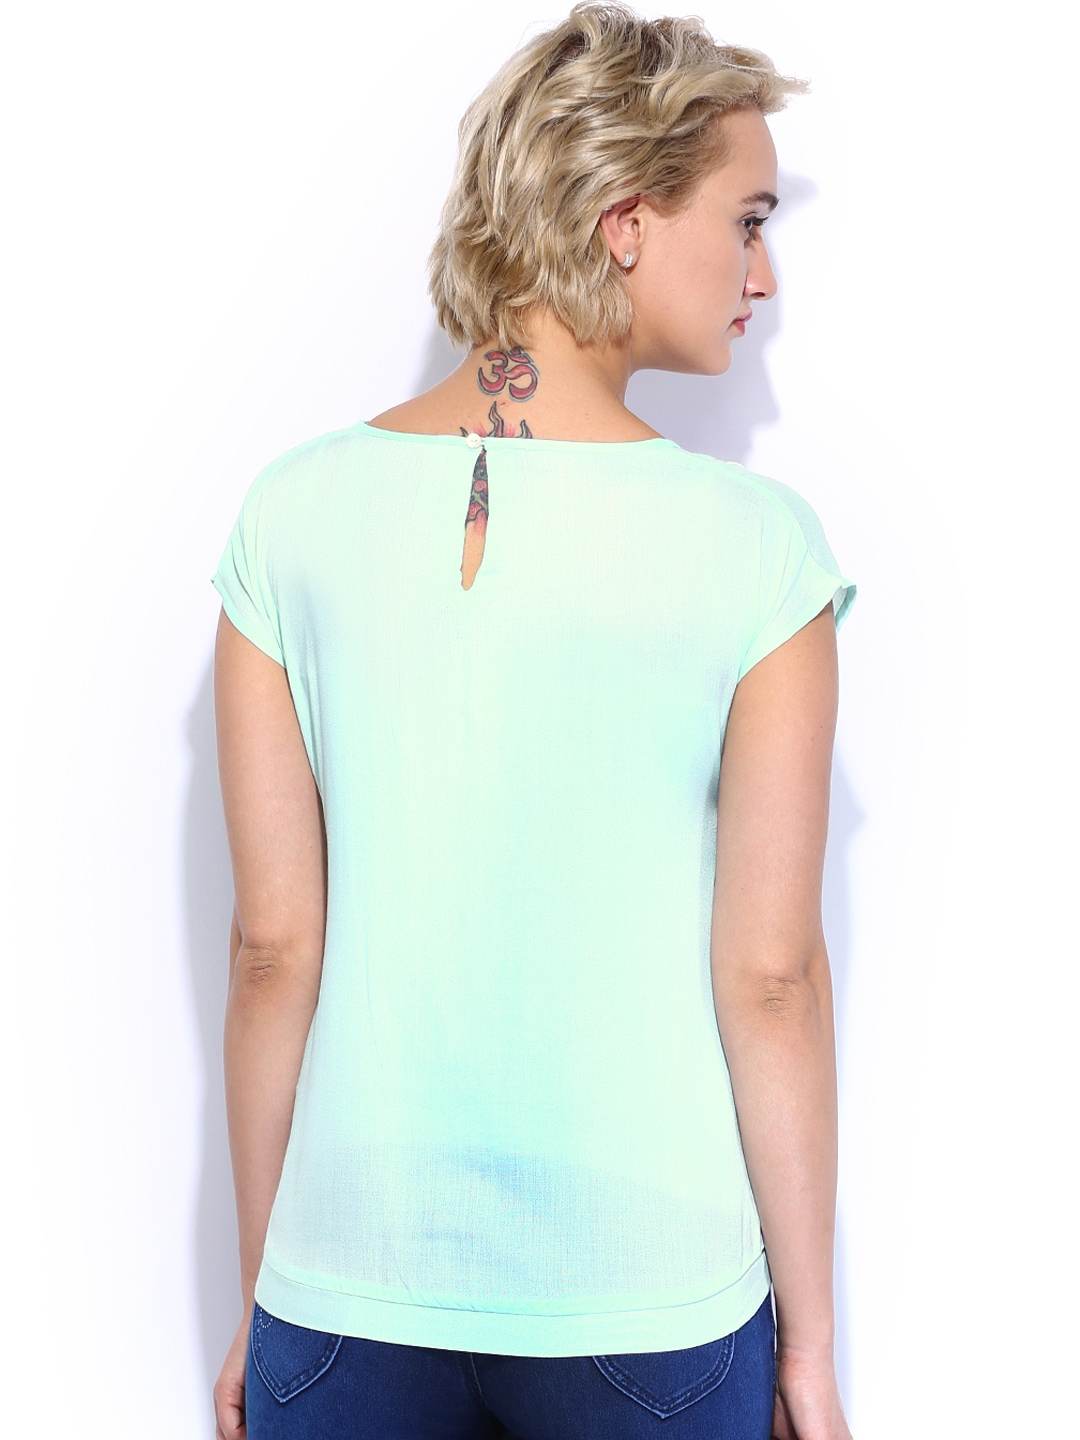 Shop for mint green top online at Target. Free shipping on purchases over $35 and save 5% every day with your Target REDcard.